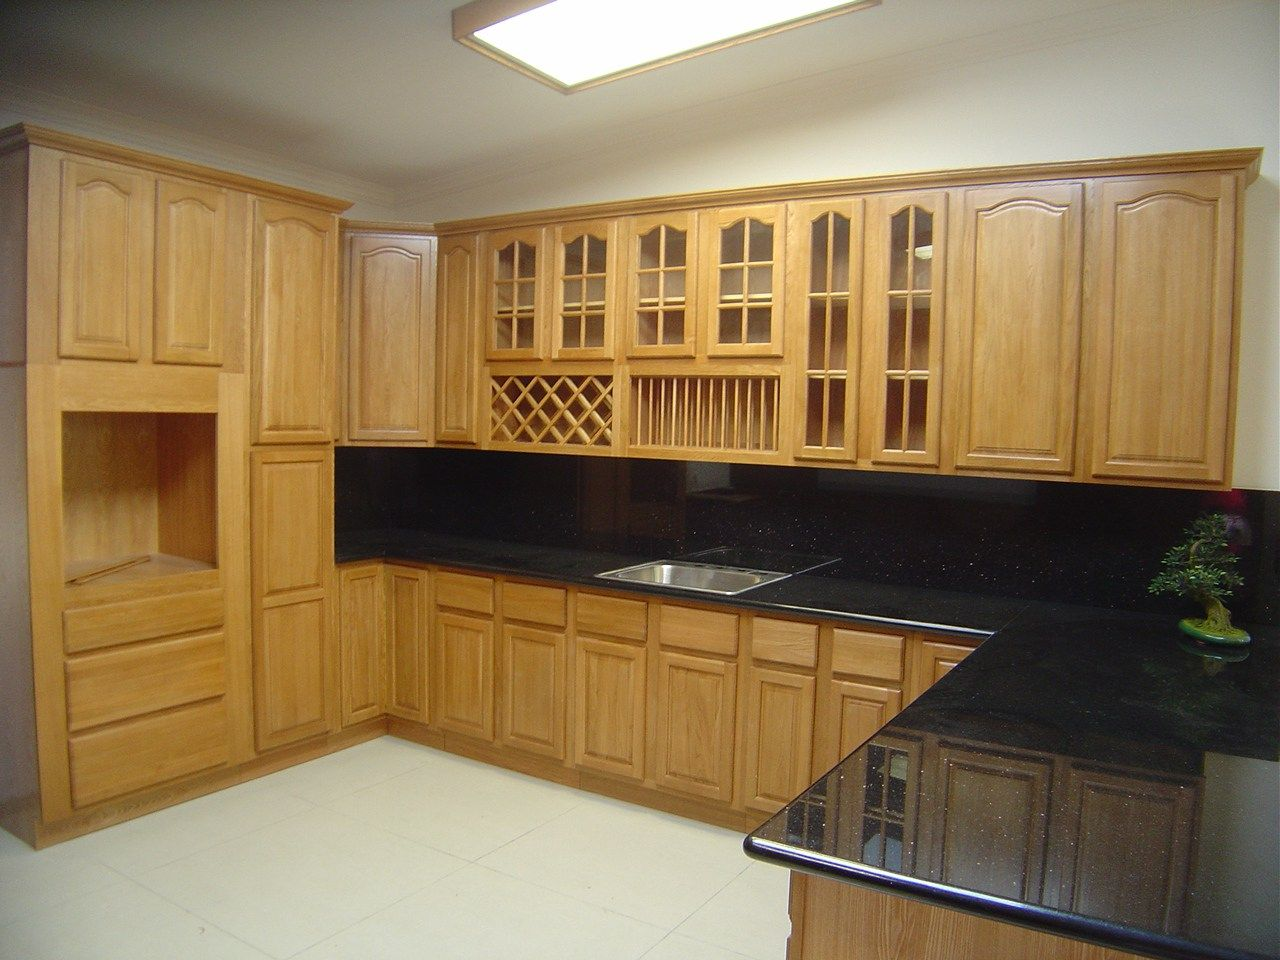 Home interior ideas kerala designing kitchen layout important step kitchen cabinet designs